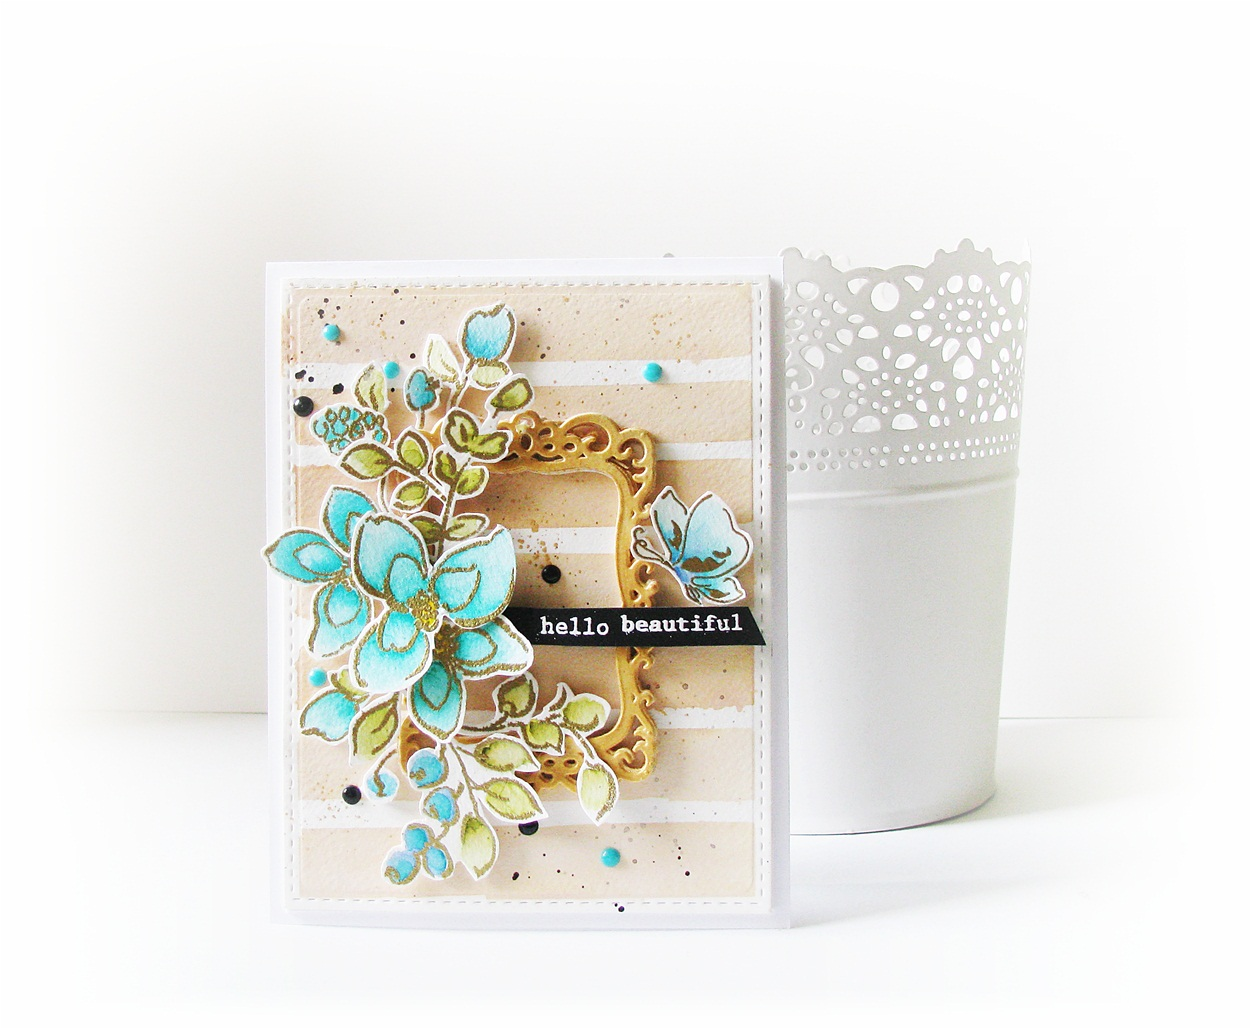 To Create This Card, I First Stamped The Flowers And Leaves From The  Altenew Golden Garden Set On Canson Watercolor Paper Using Versamark  Embossing Ink.